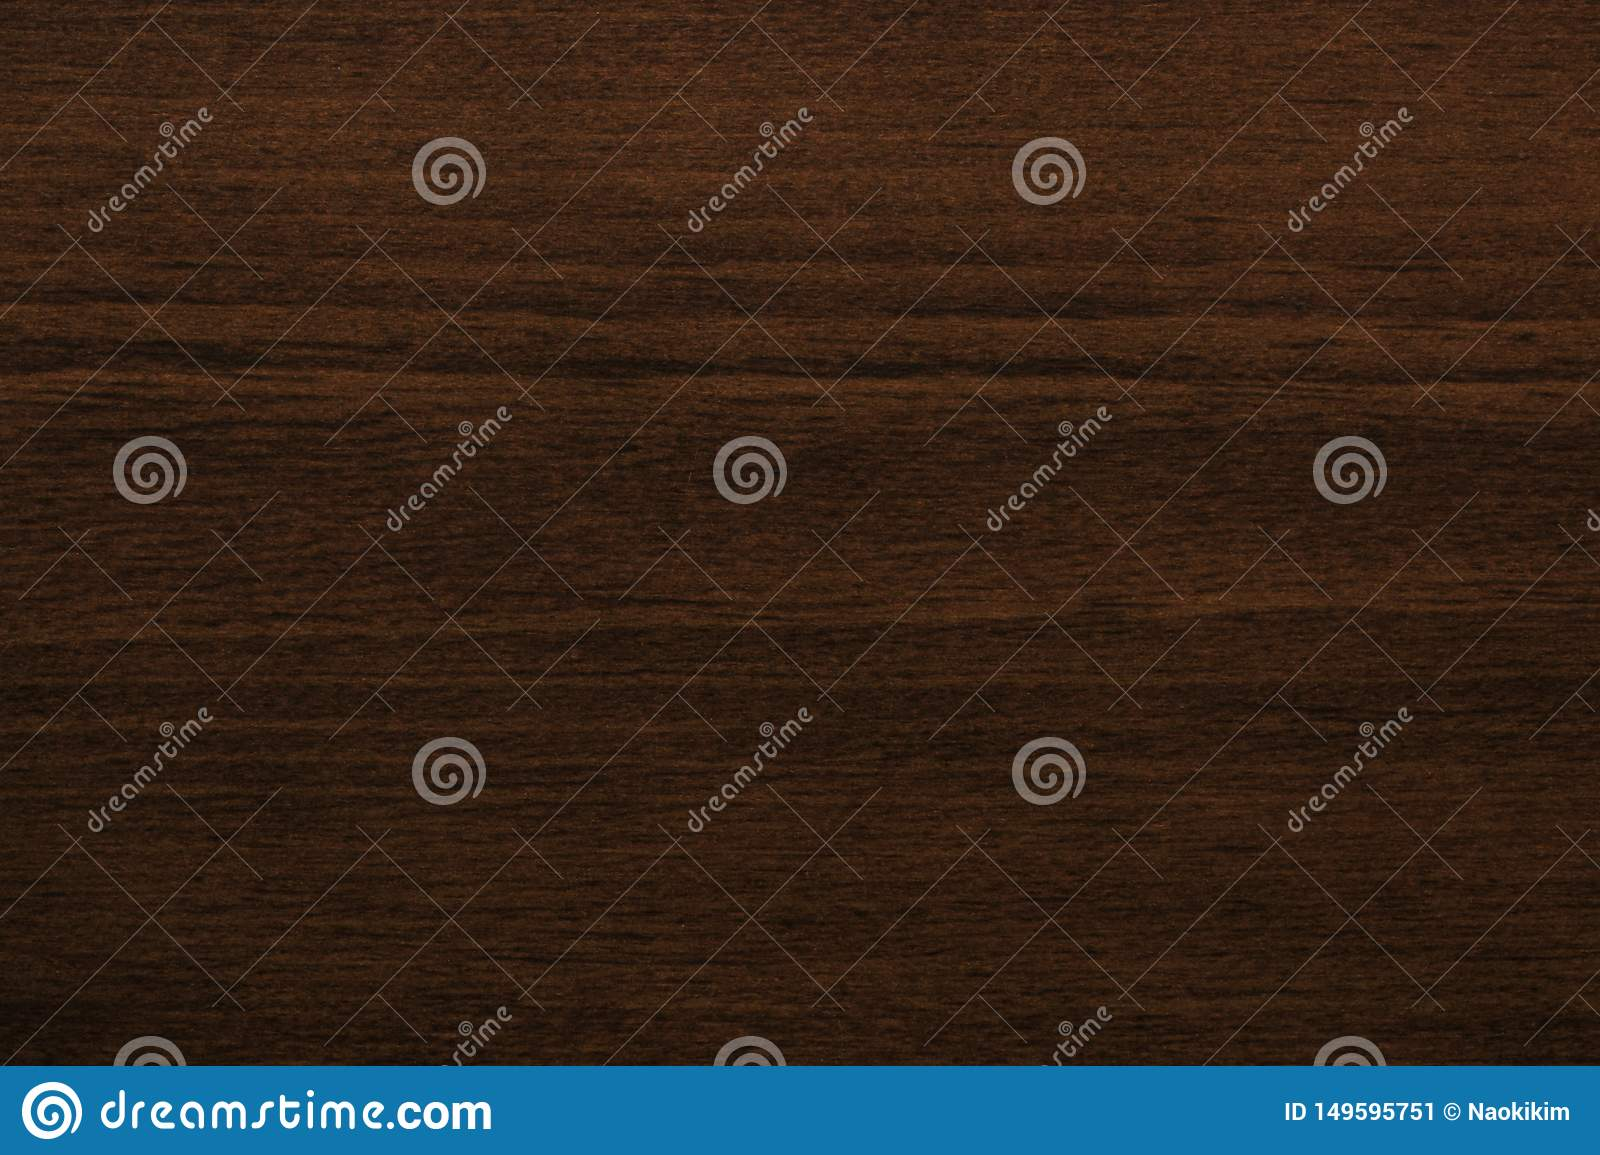 Dark brown wood plank abstract or vintage board texture background